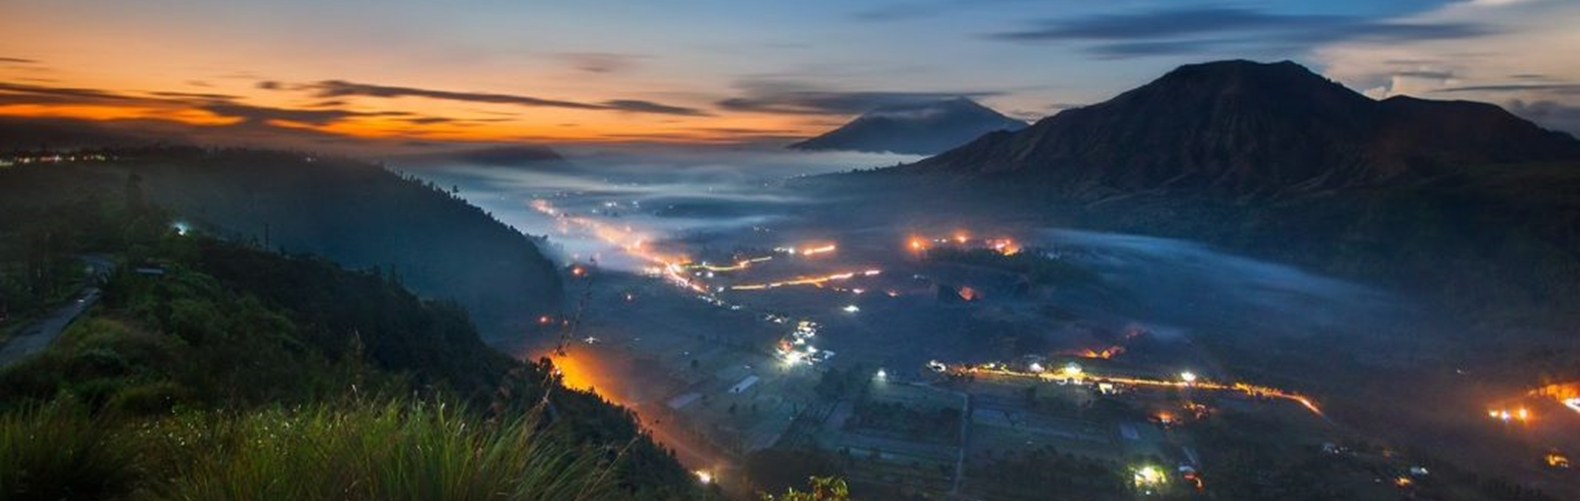 bromo ijen 2 day 1 night